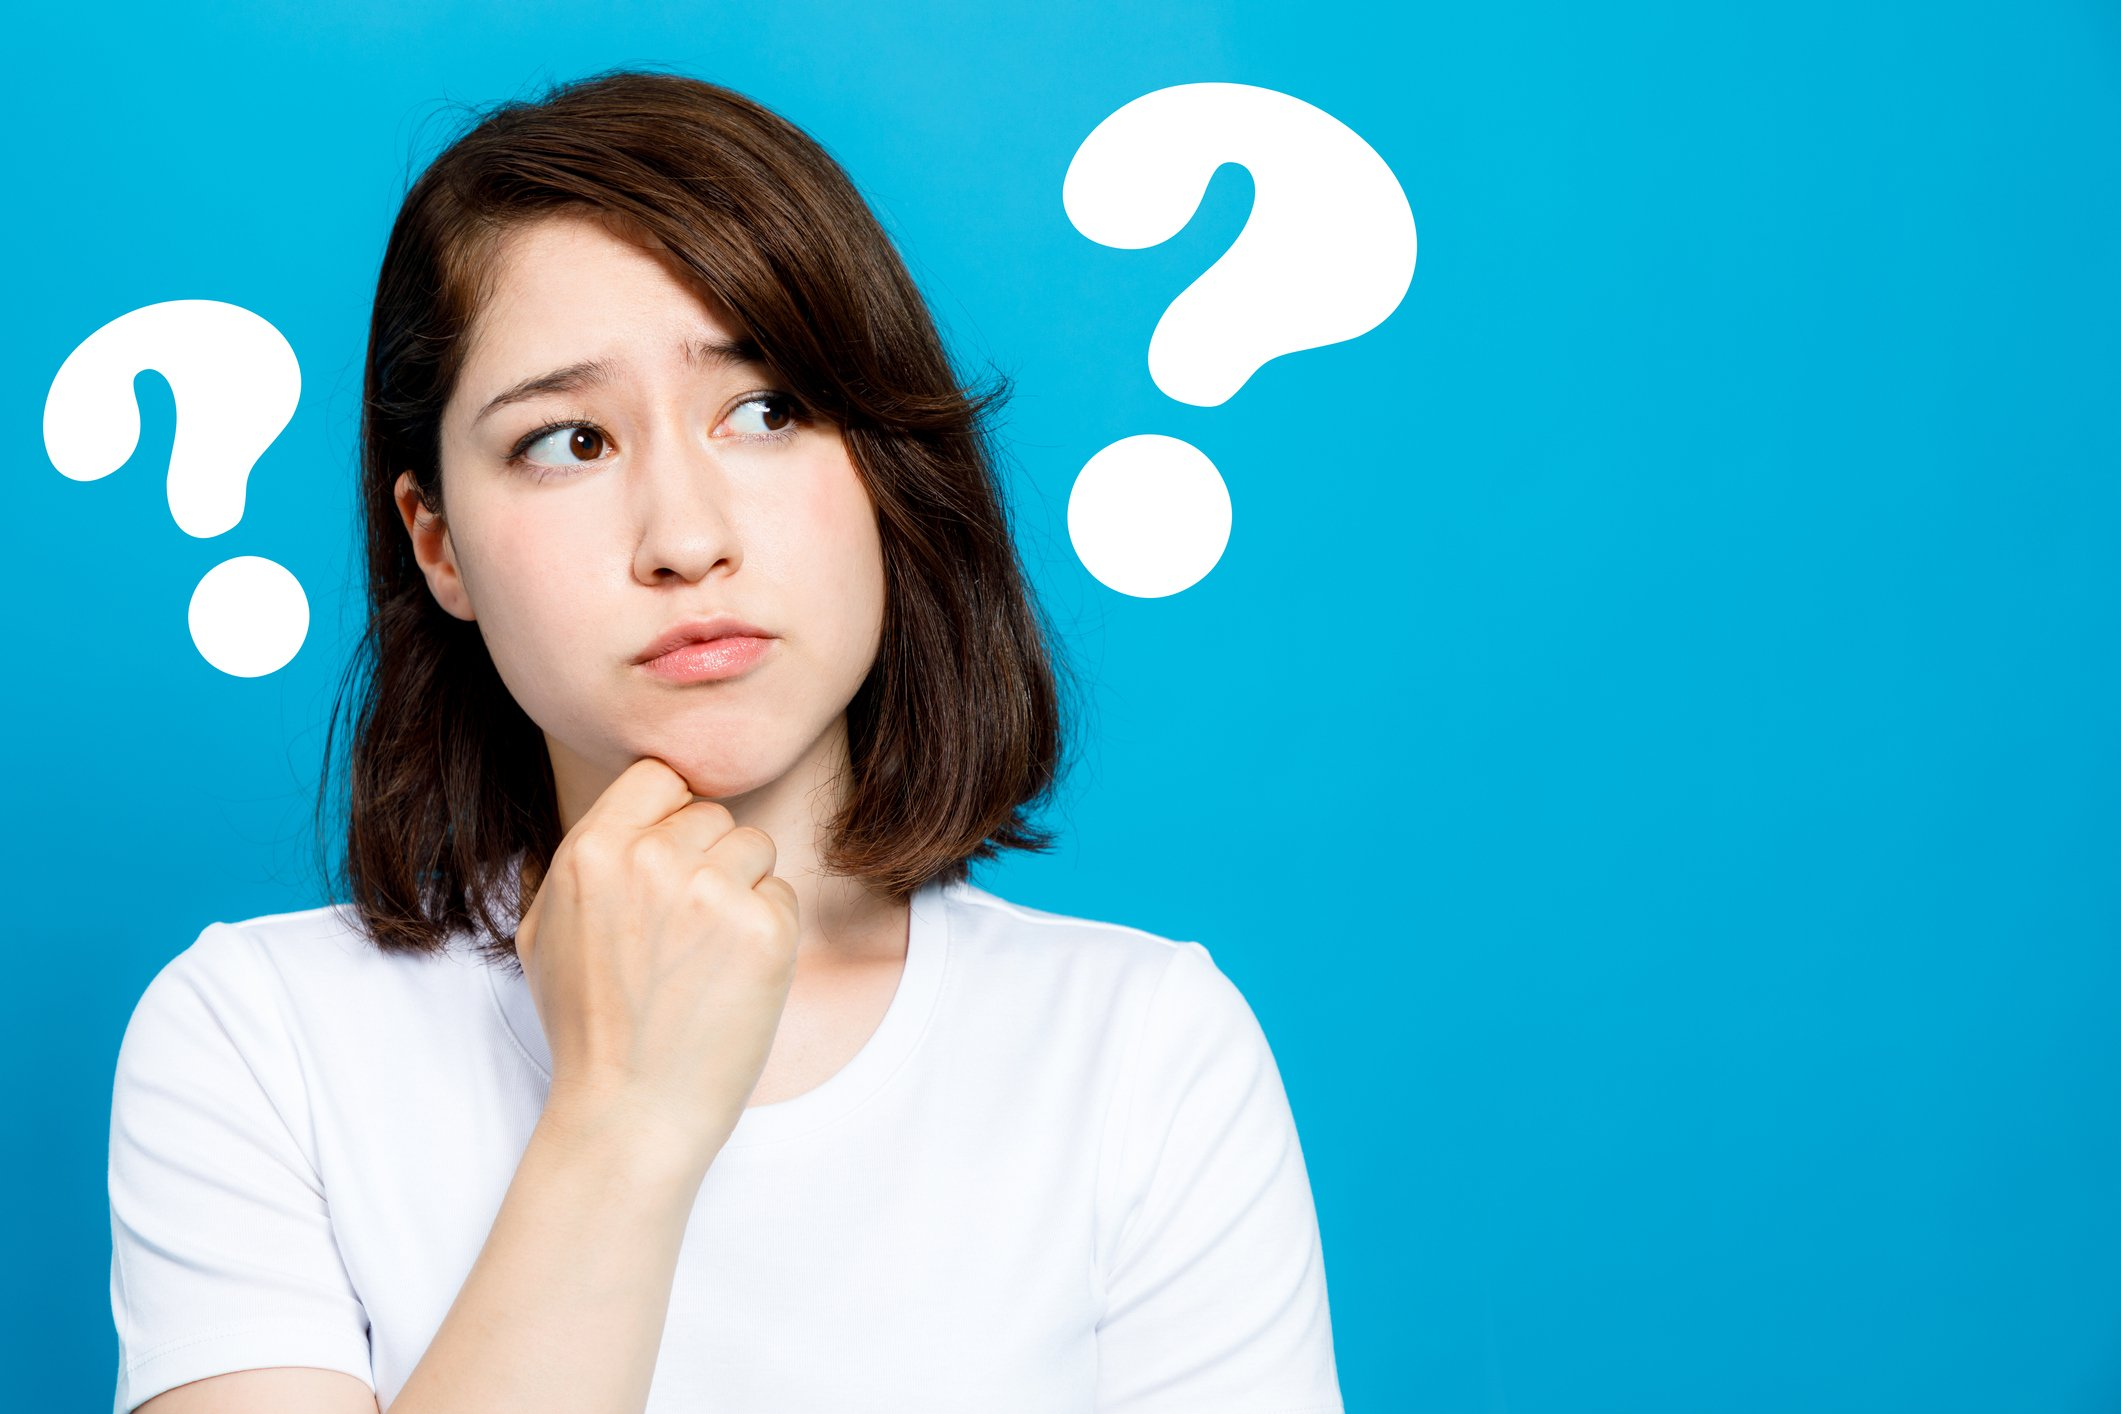 Woman between two big question marks